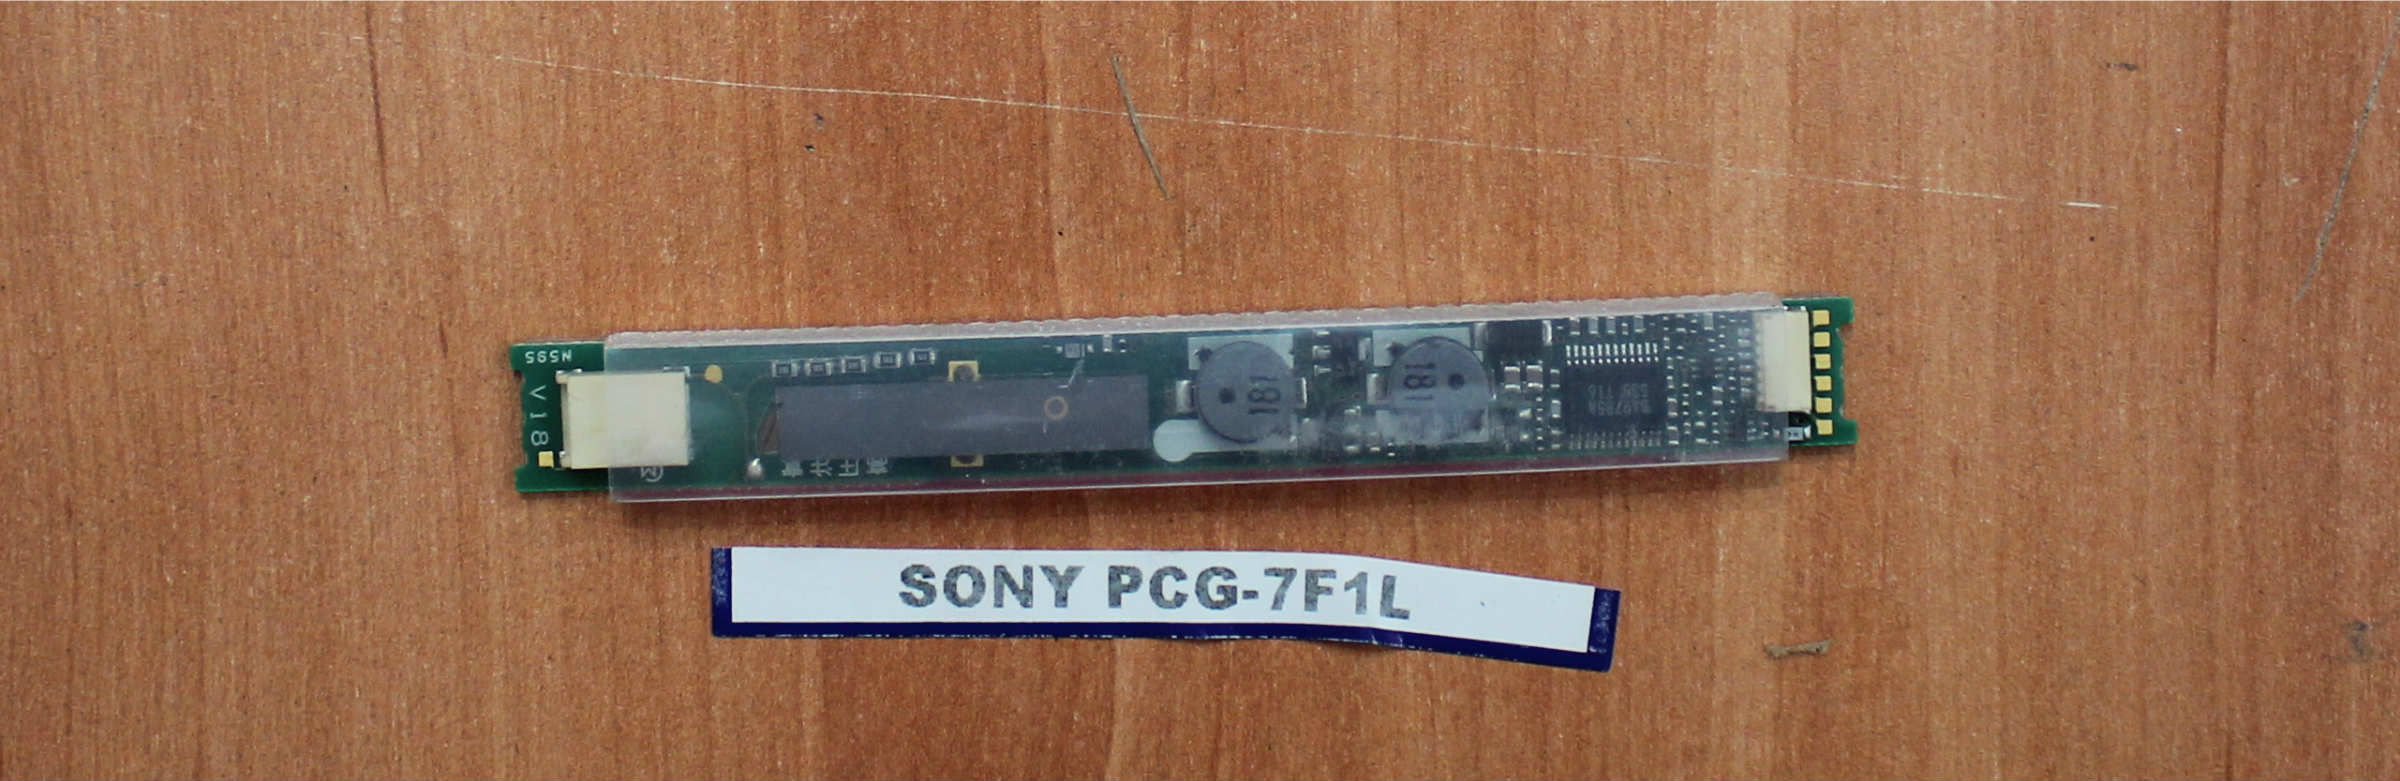 PCG-K45 DRIVER FOR WINDOWS DOWNLOAD